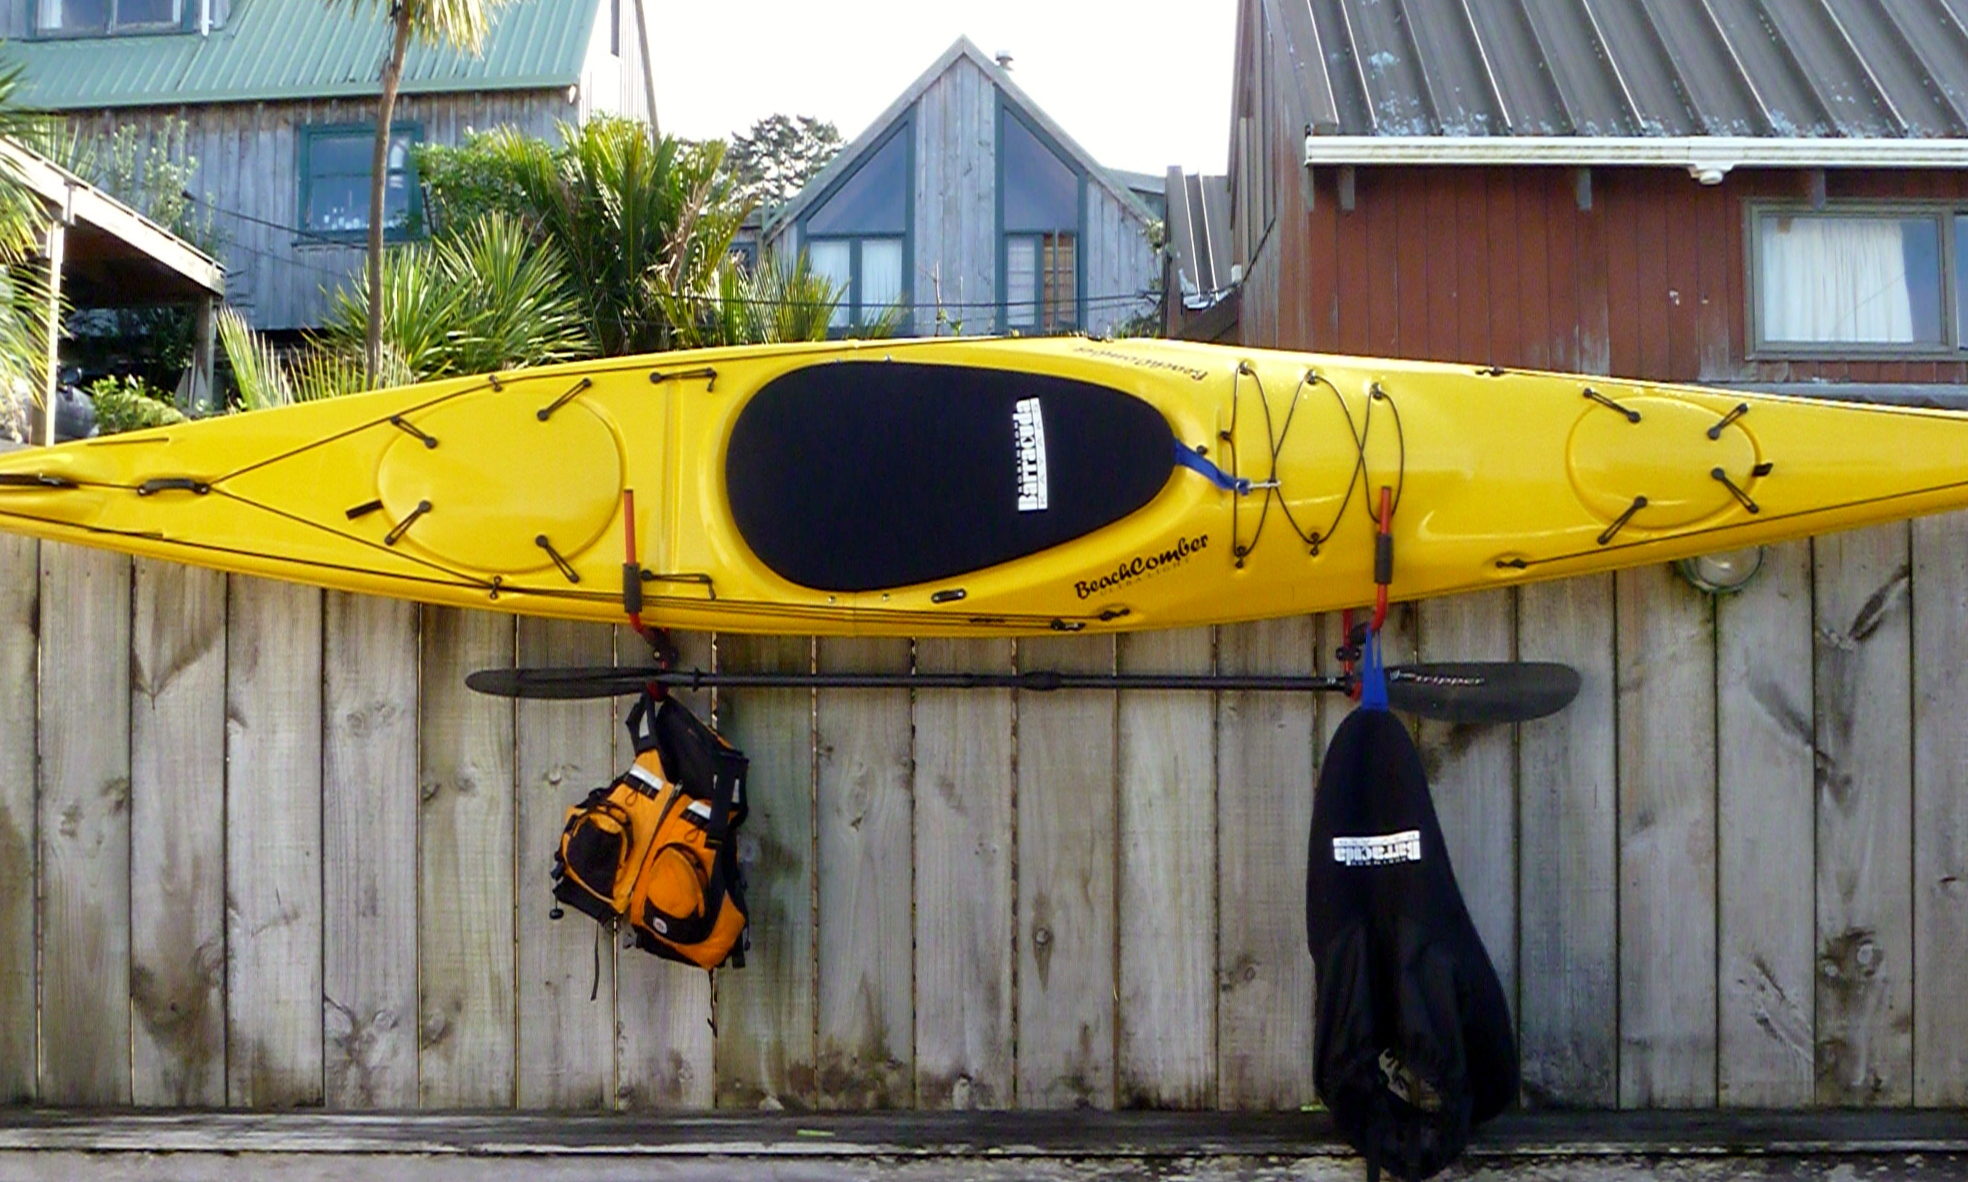 Kayak storage Image